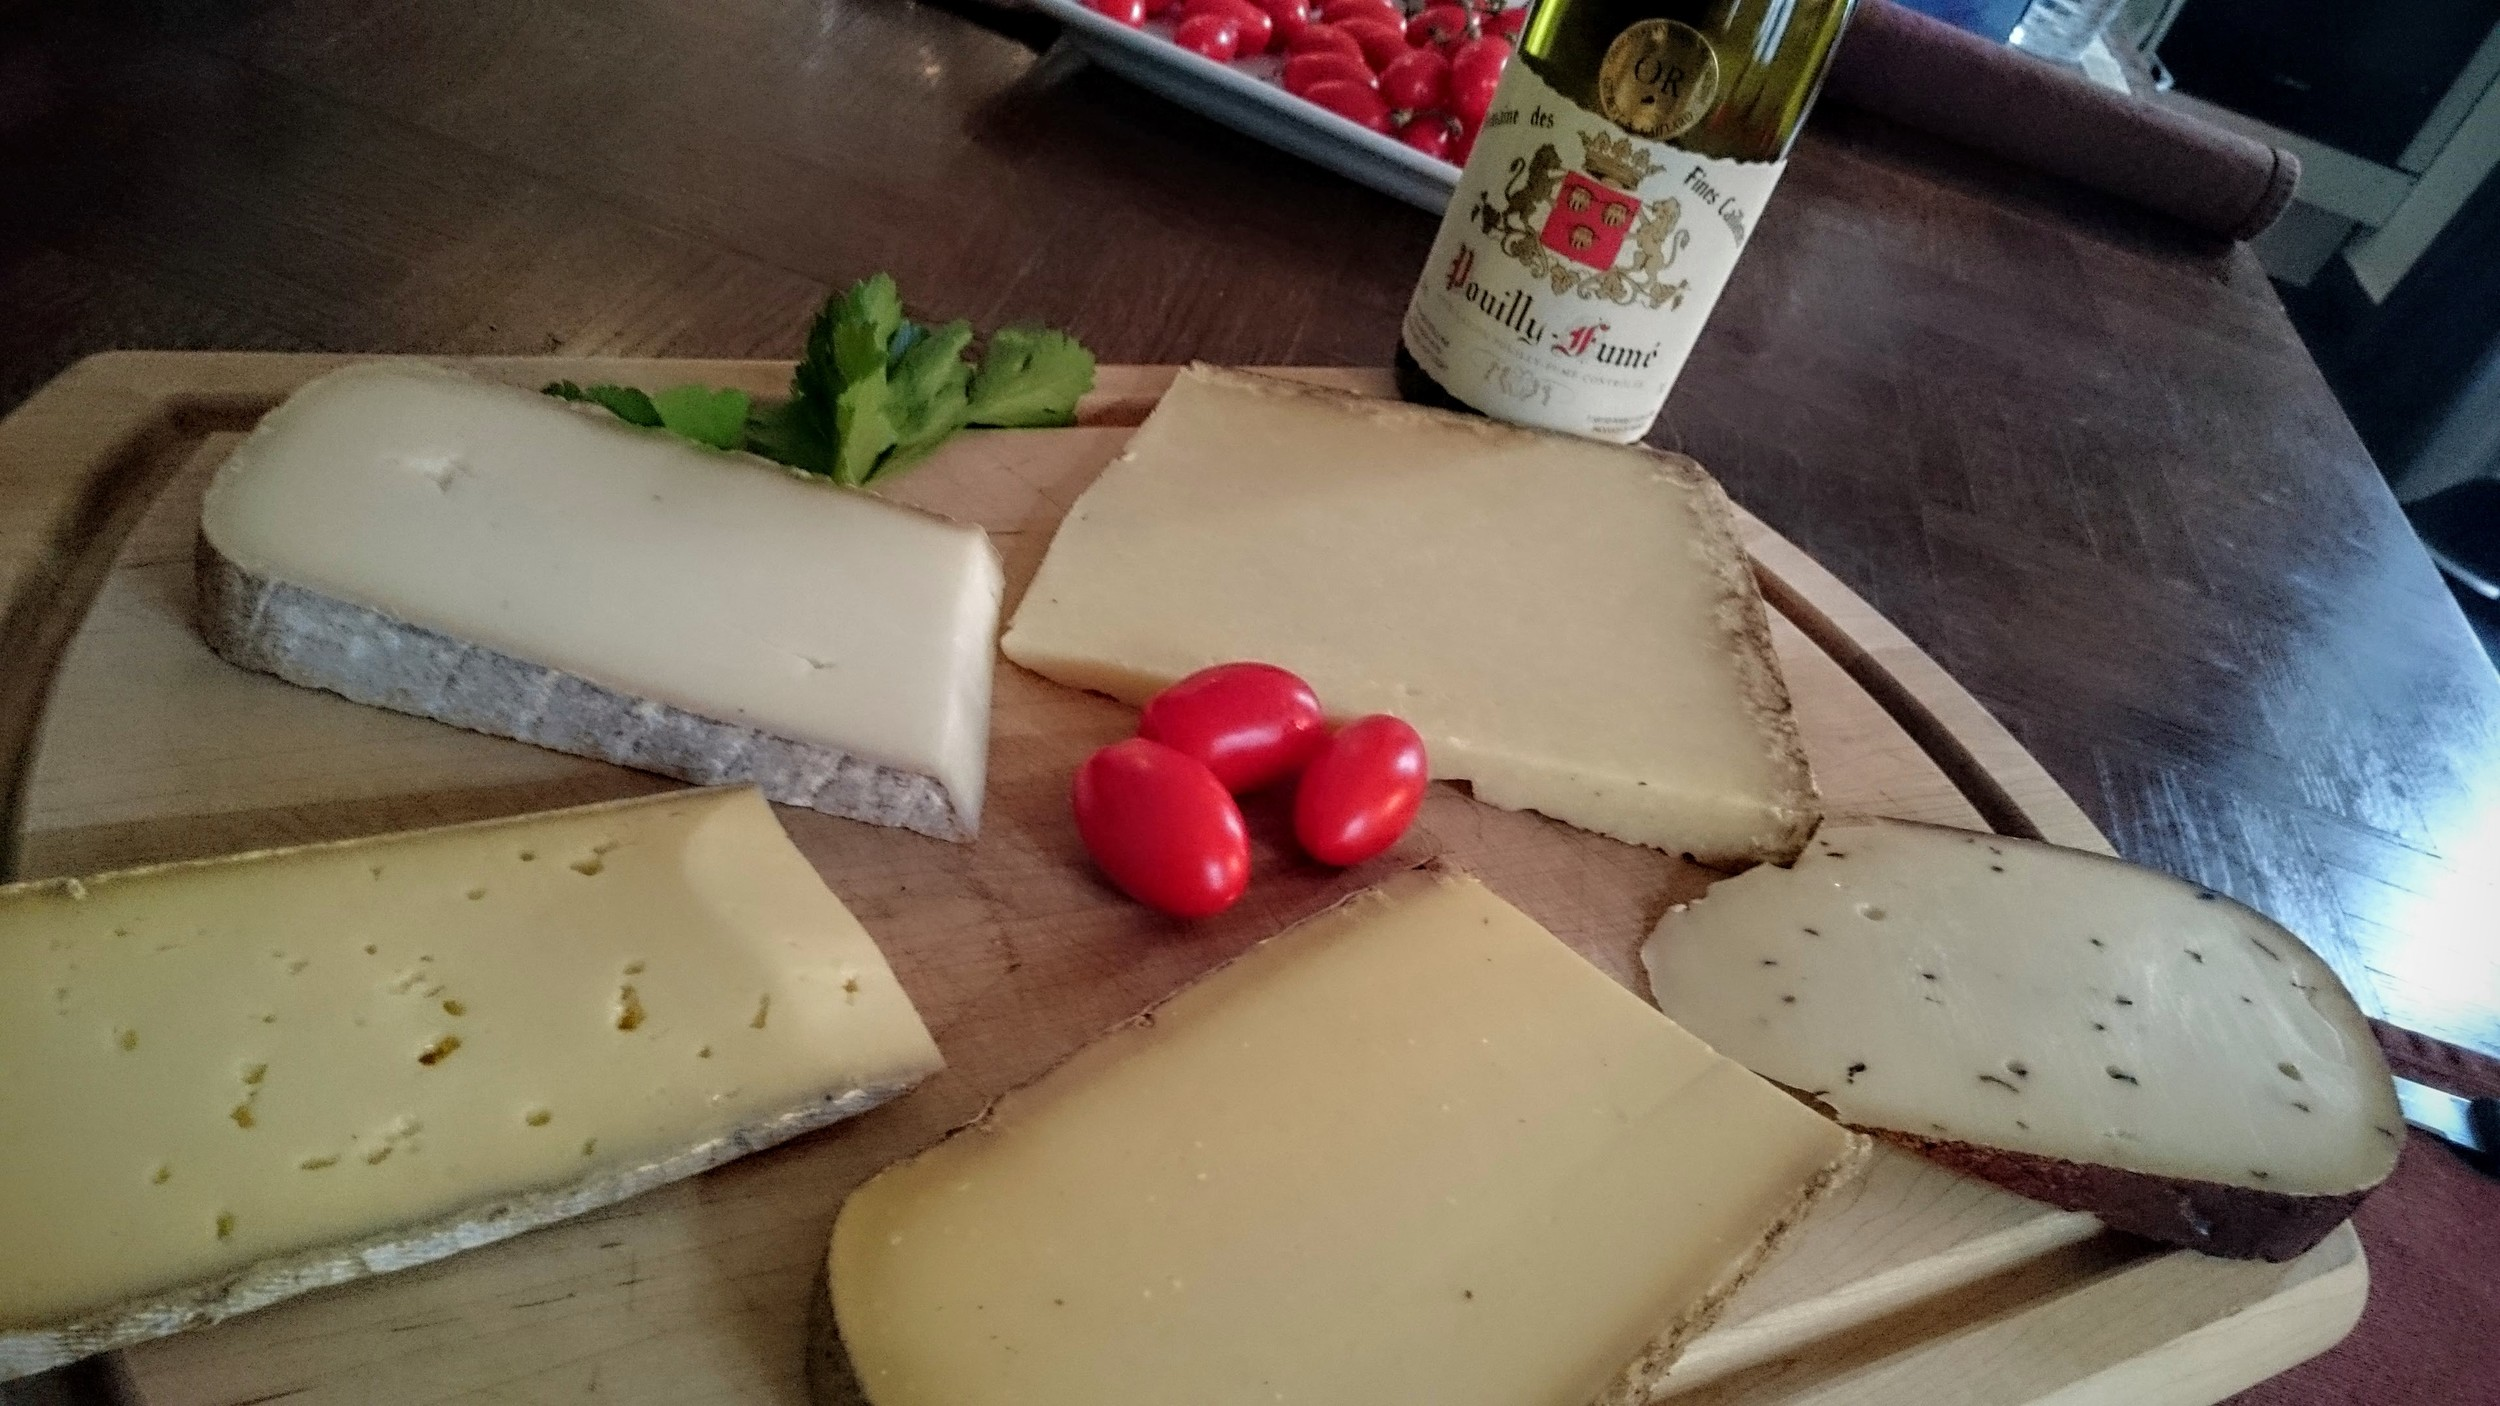 Clockwise from top left:  Pur brebis  (sheep's cheese) from Iraty, Cantal,  pecorino  with truffles,  comté , tomme de montagne  (cow's cheese).